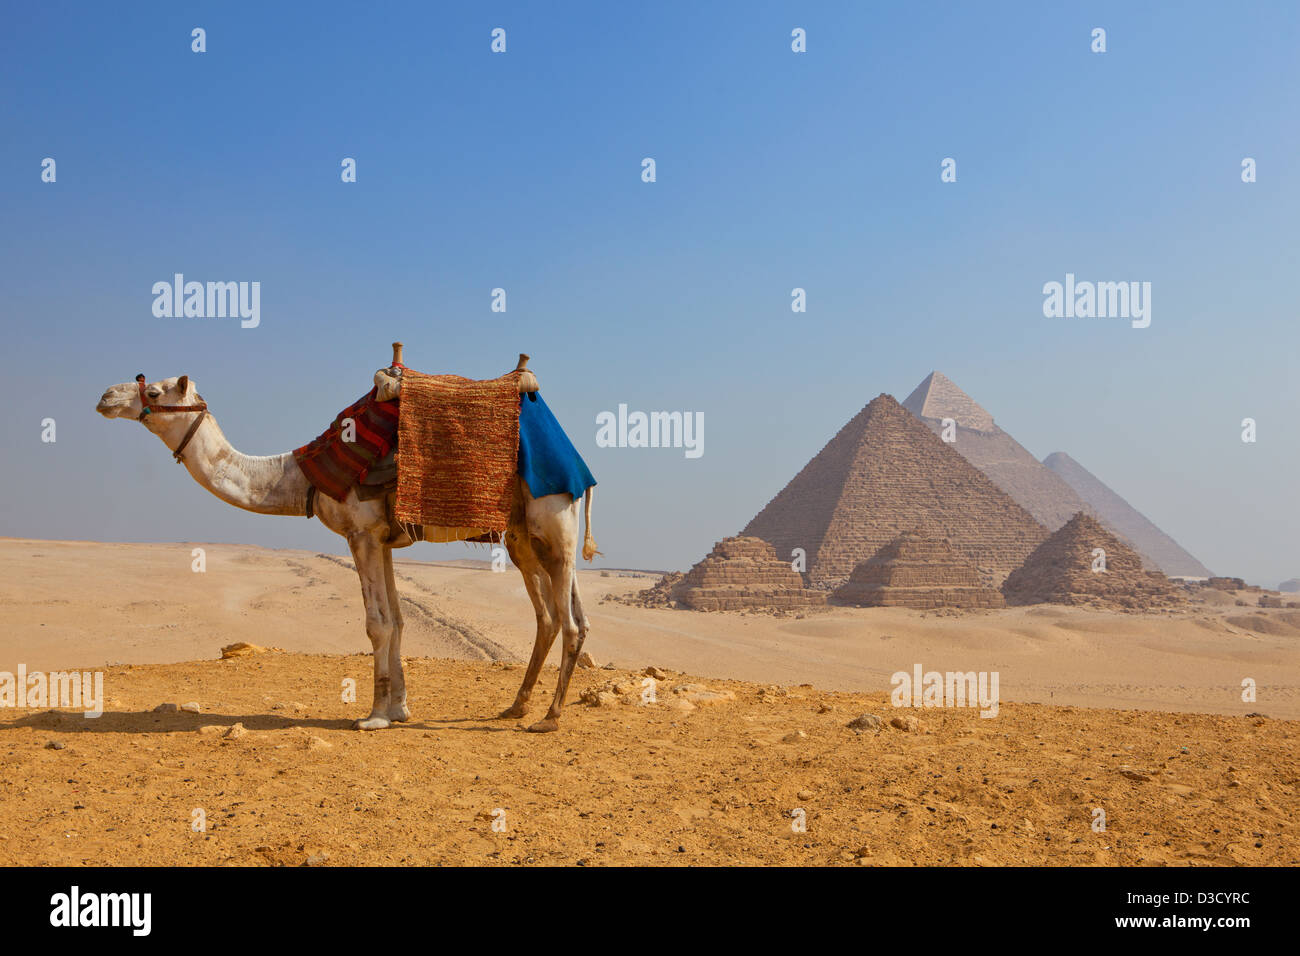 Pyramides de Gizeh au Caire, Egypte Photo Stock